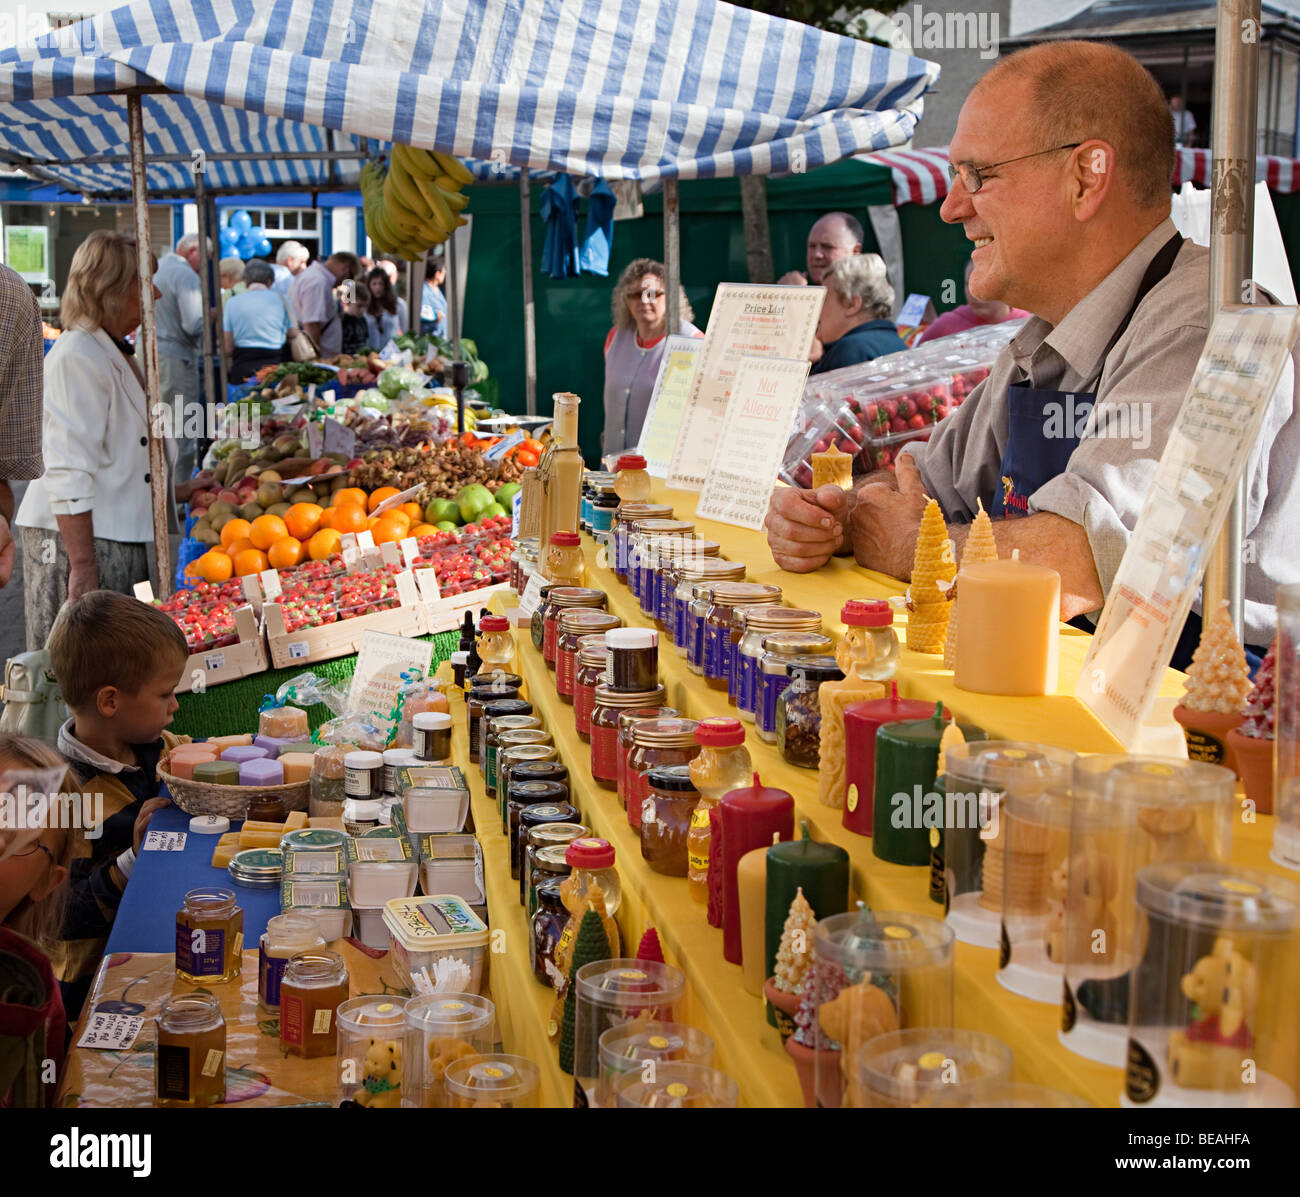 Man selling honey and beeswax products on market stall Abergavenny food festival Wales UK - Stock Image